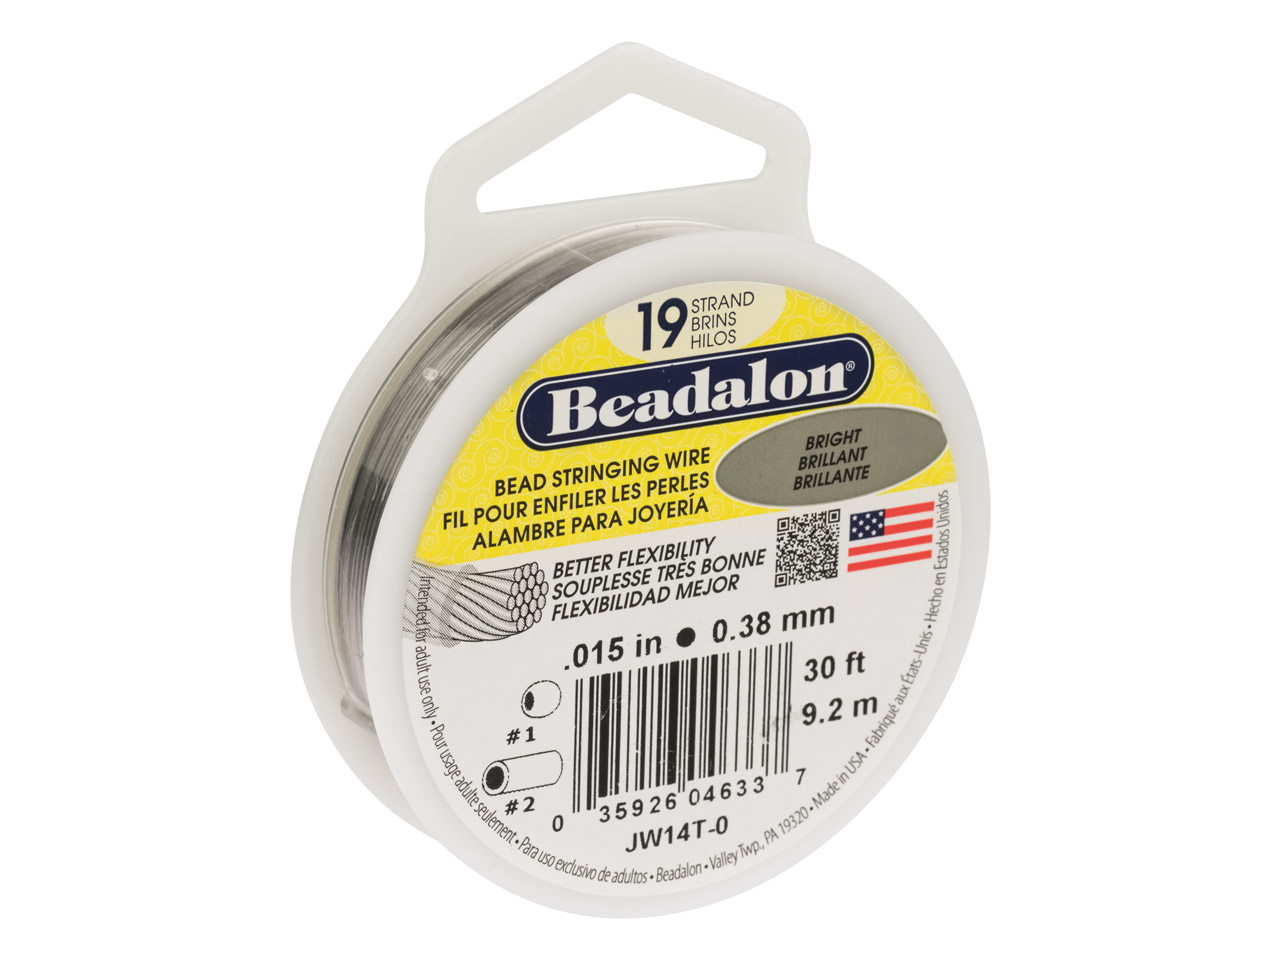 Beadalon 19 Strand Bright 0.38mm X 9.2m Wire